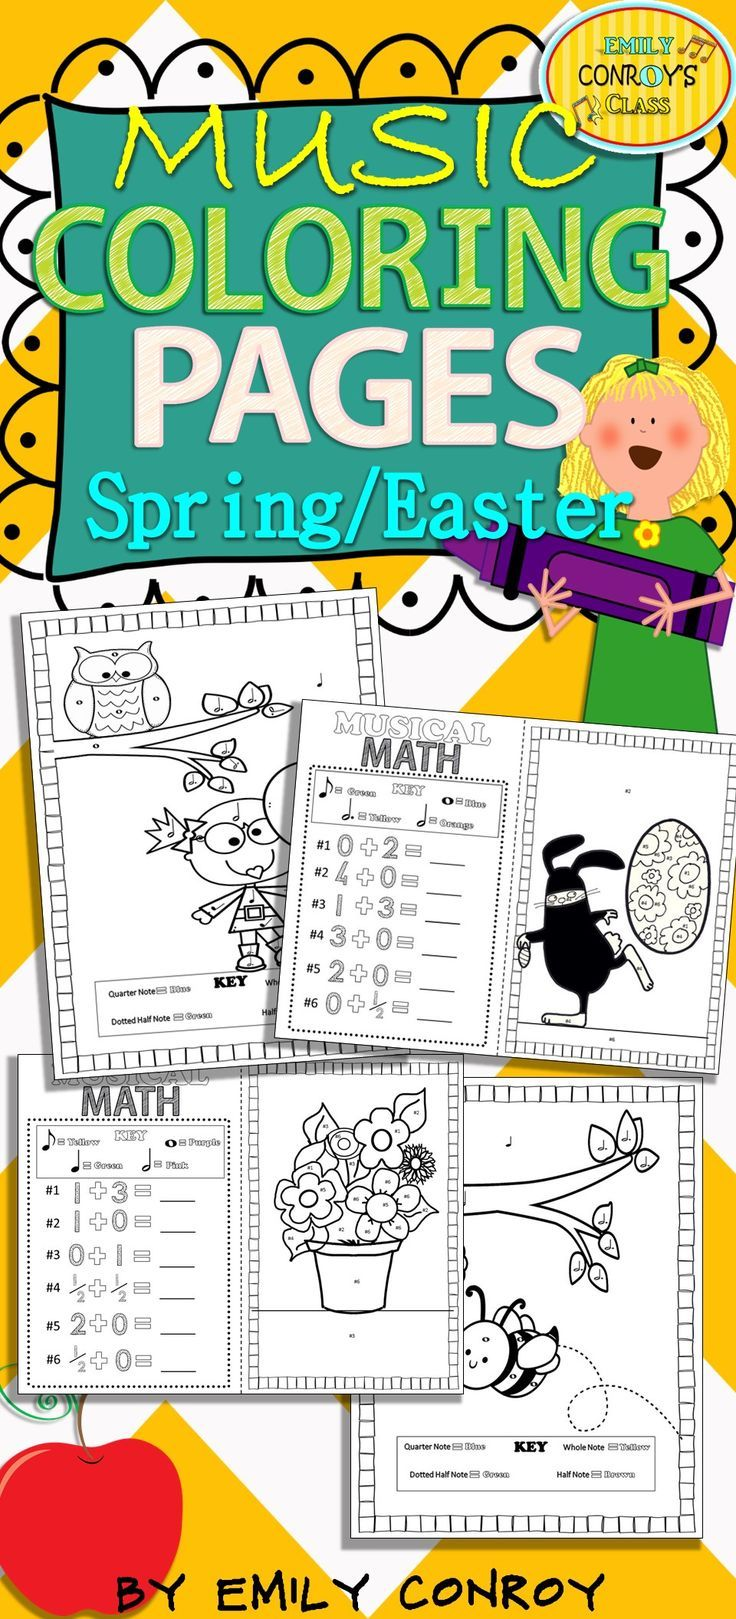 Spring coloring pages for upper elementary - Music Coloring Pages Spring Easter